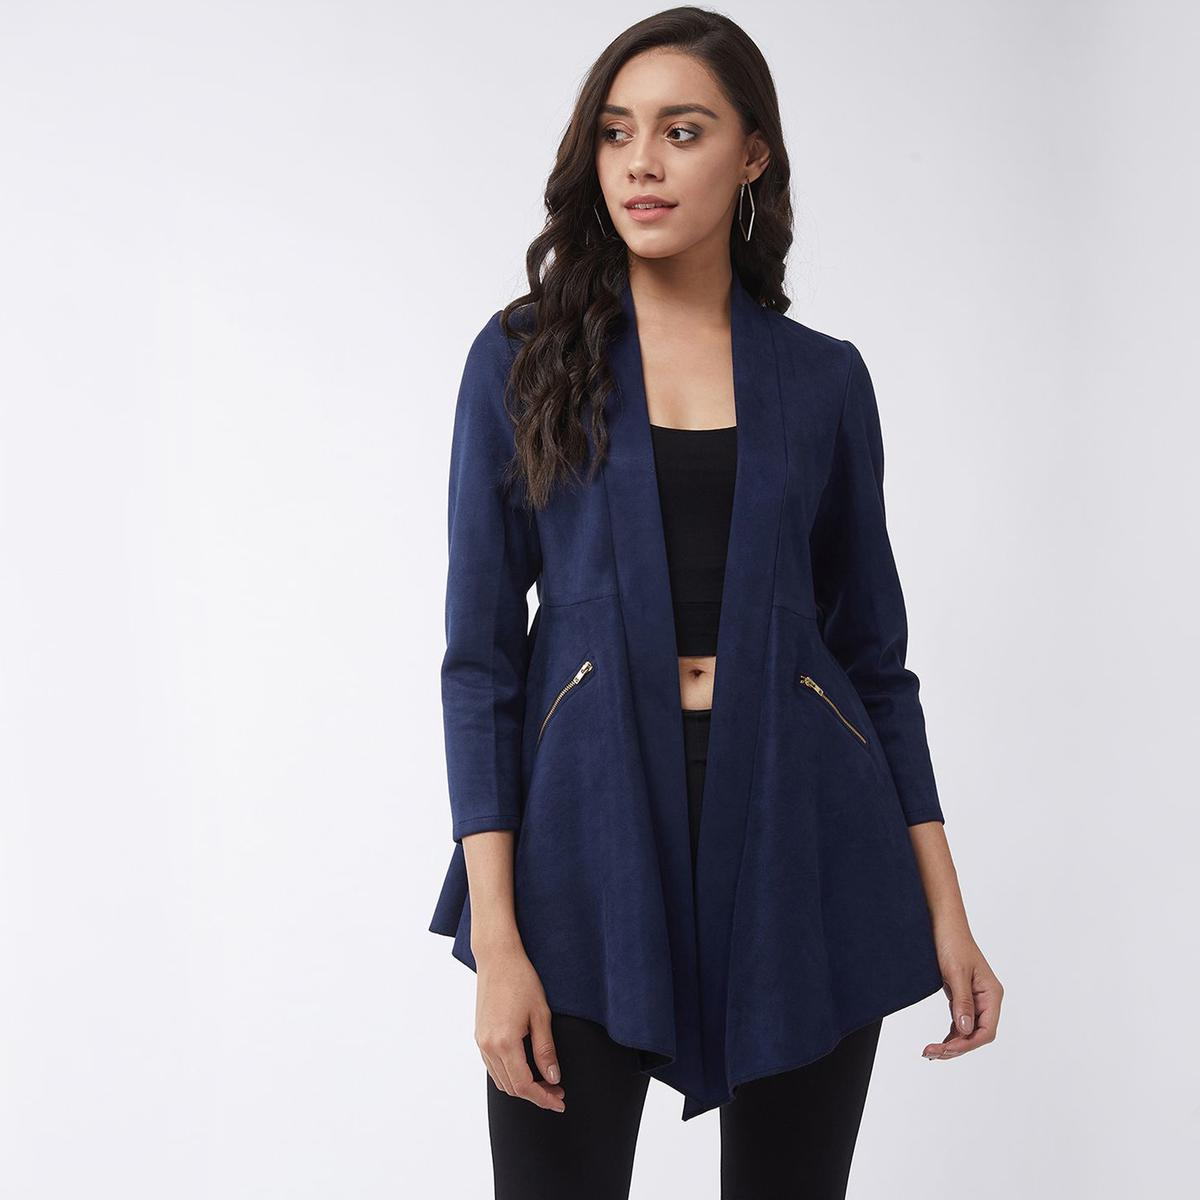 Pannkh - Women's Navy Blue Colored Solid A-line Side Zipper Polyester Shrug